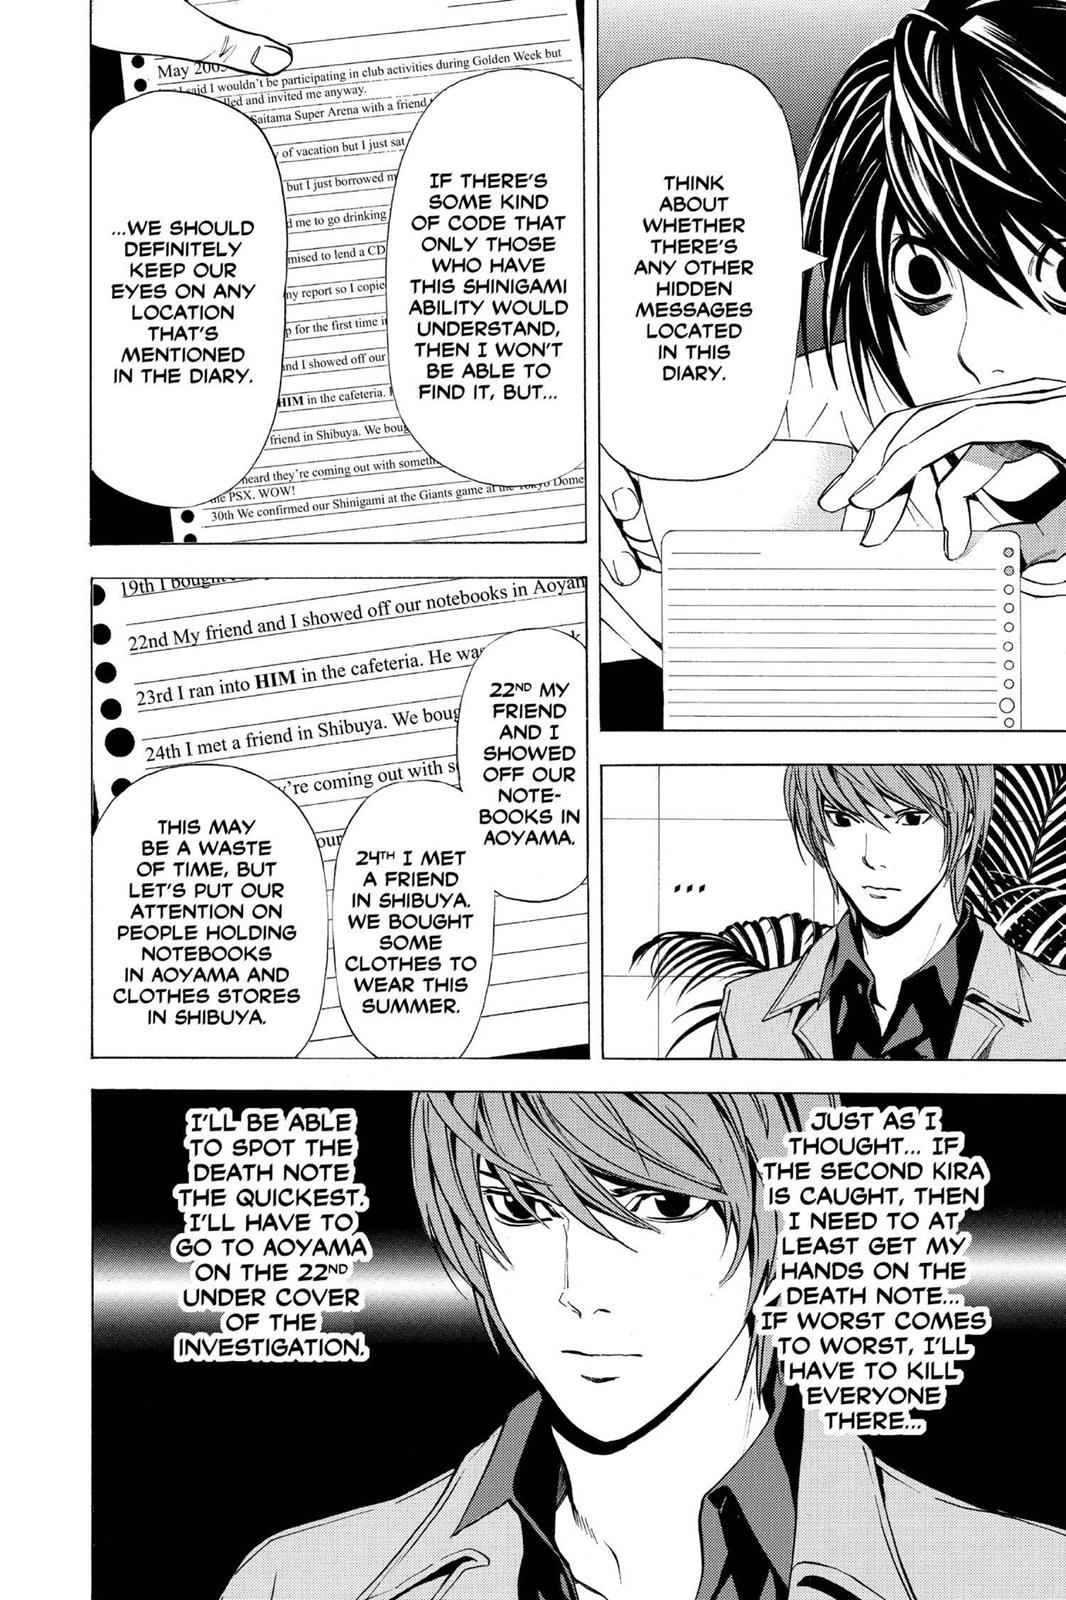 Death Note Chapter 28 Page 8